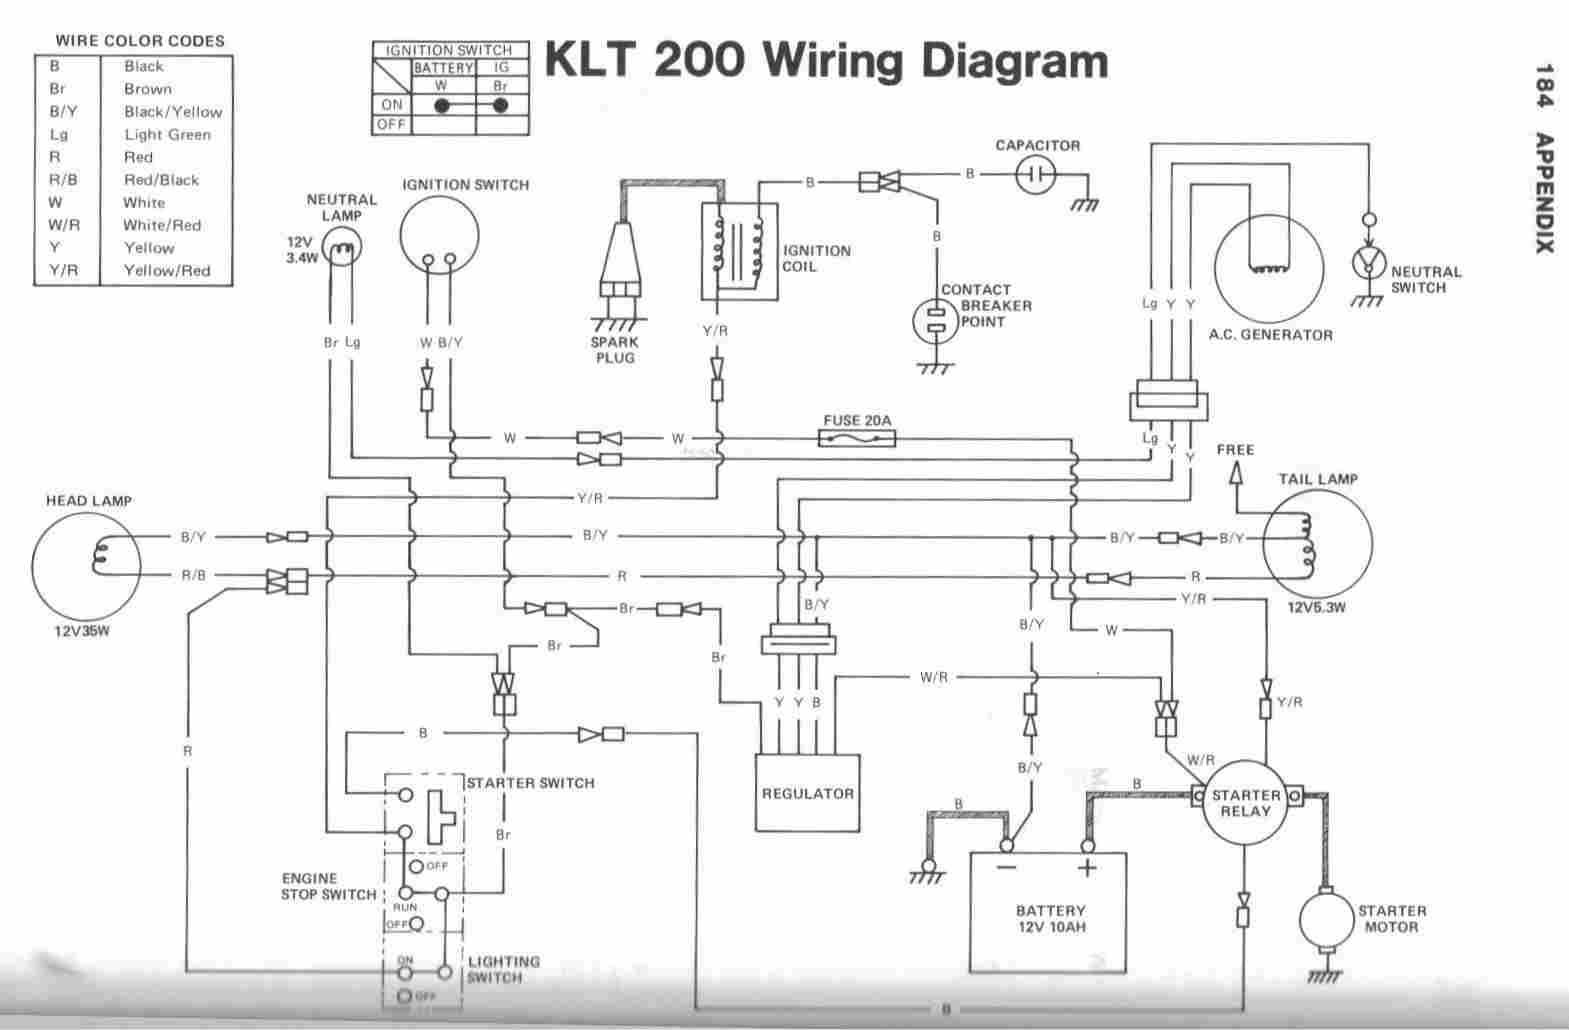 Electrical Wiring Diagrams Residential : Residential electrical wiring diagrams pdf easy routing